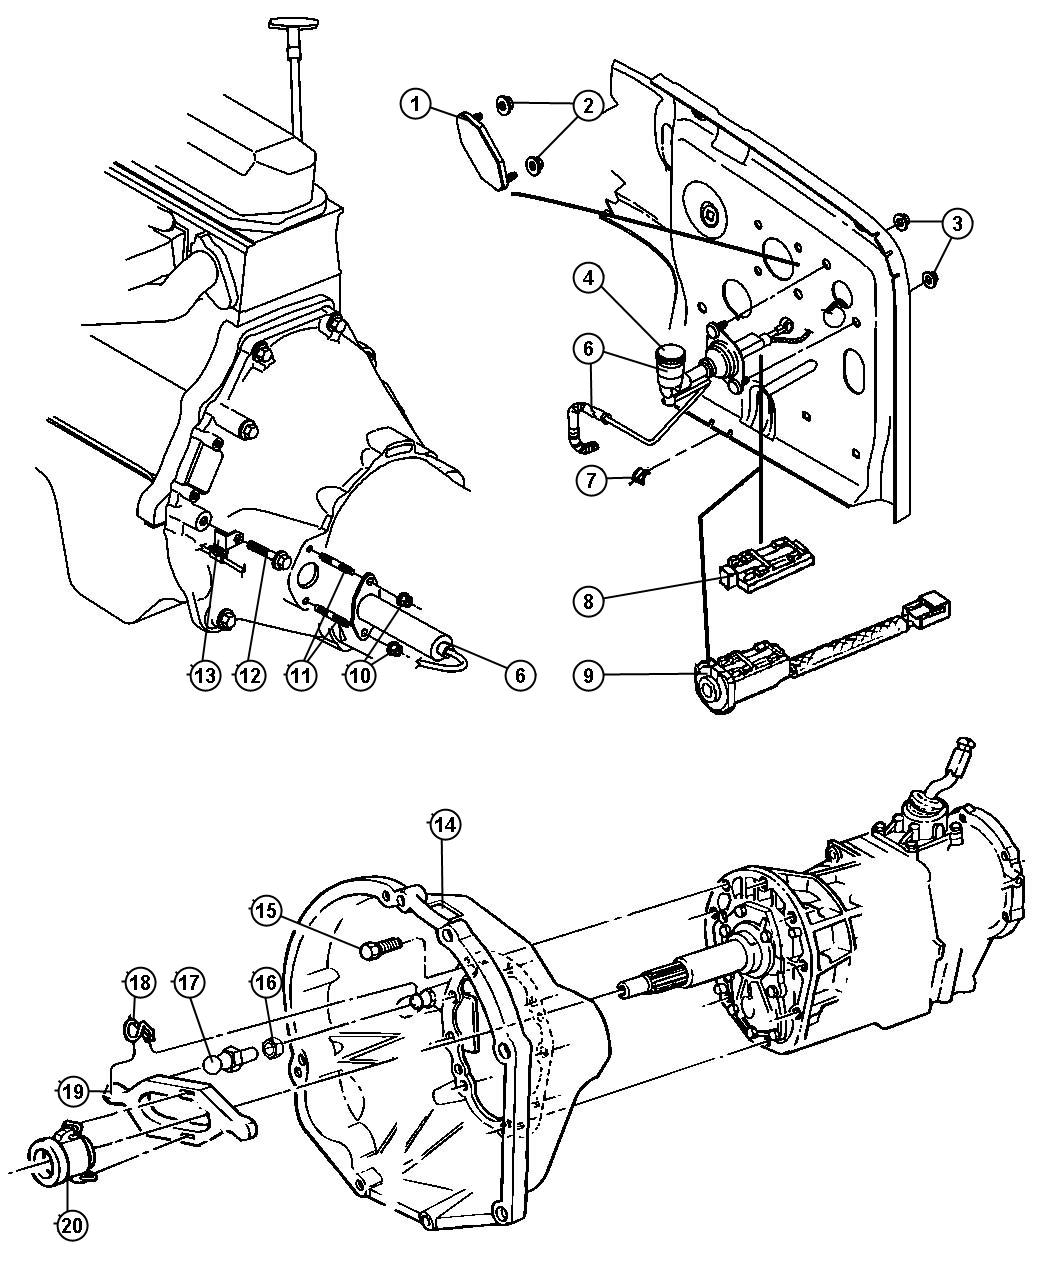 Service manual [How To Bleed Hydraulic Clutch 1997 Jeep